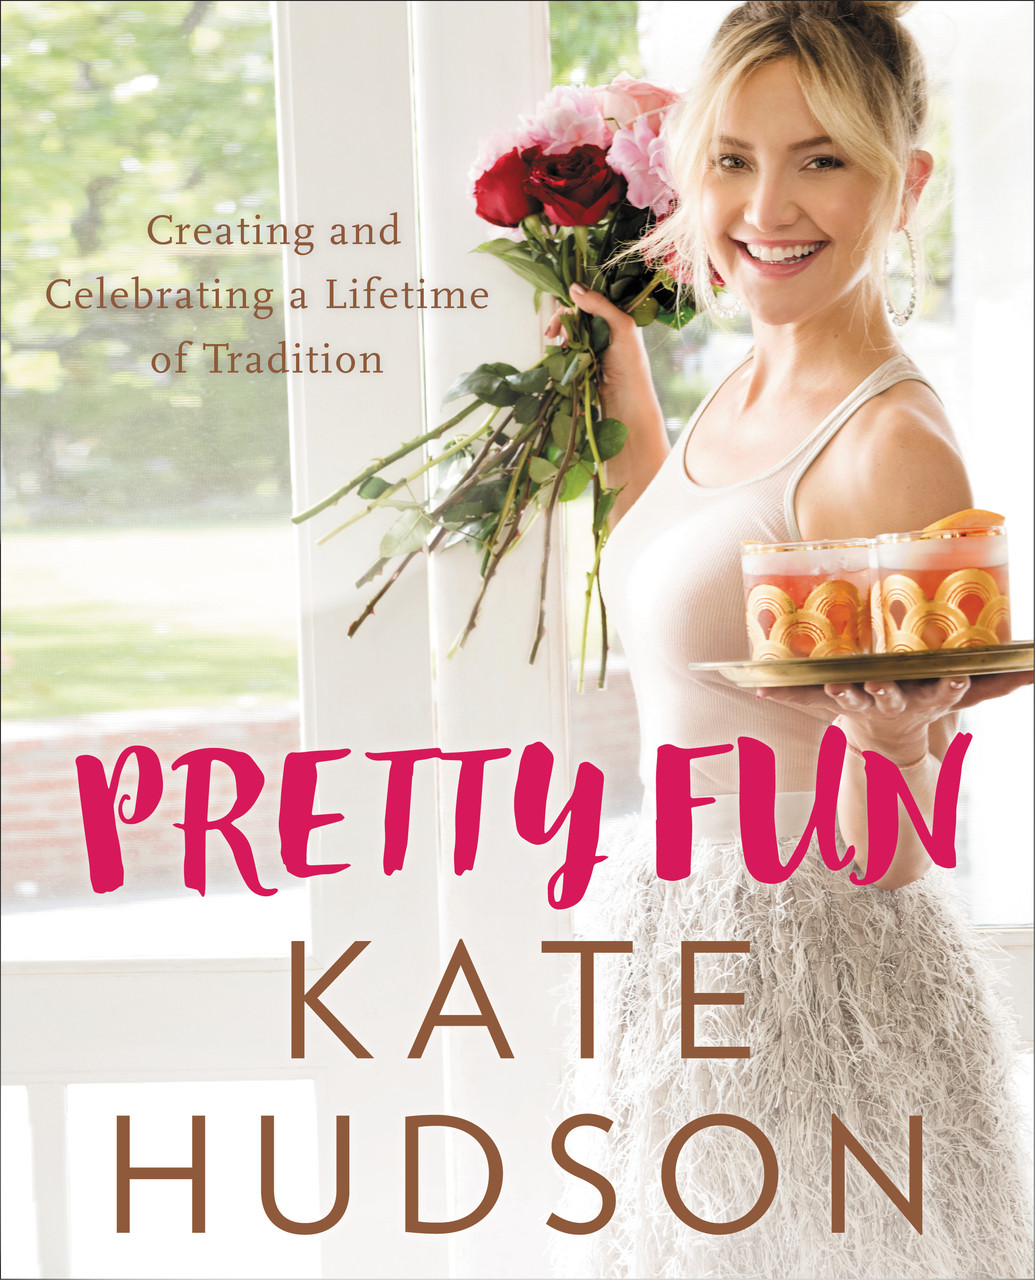 Pretty Fun: Creating and Celebrating a Lifetime of Tradition by Kate Hudson